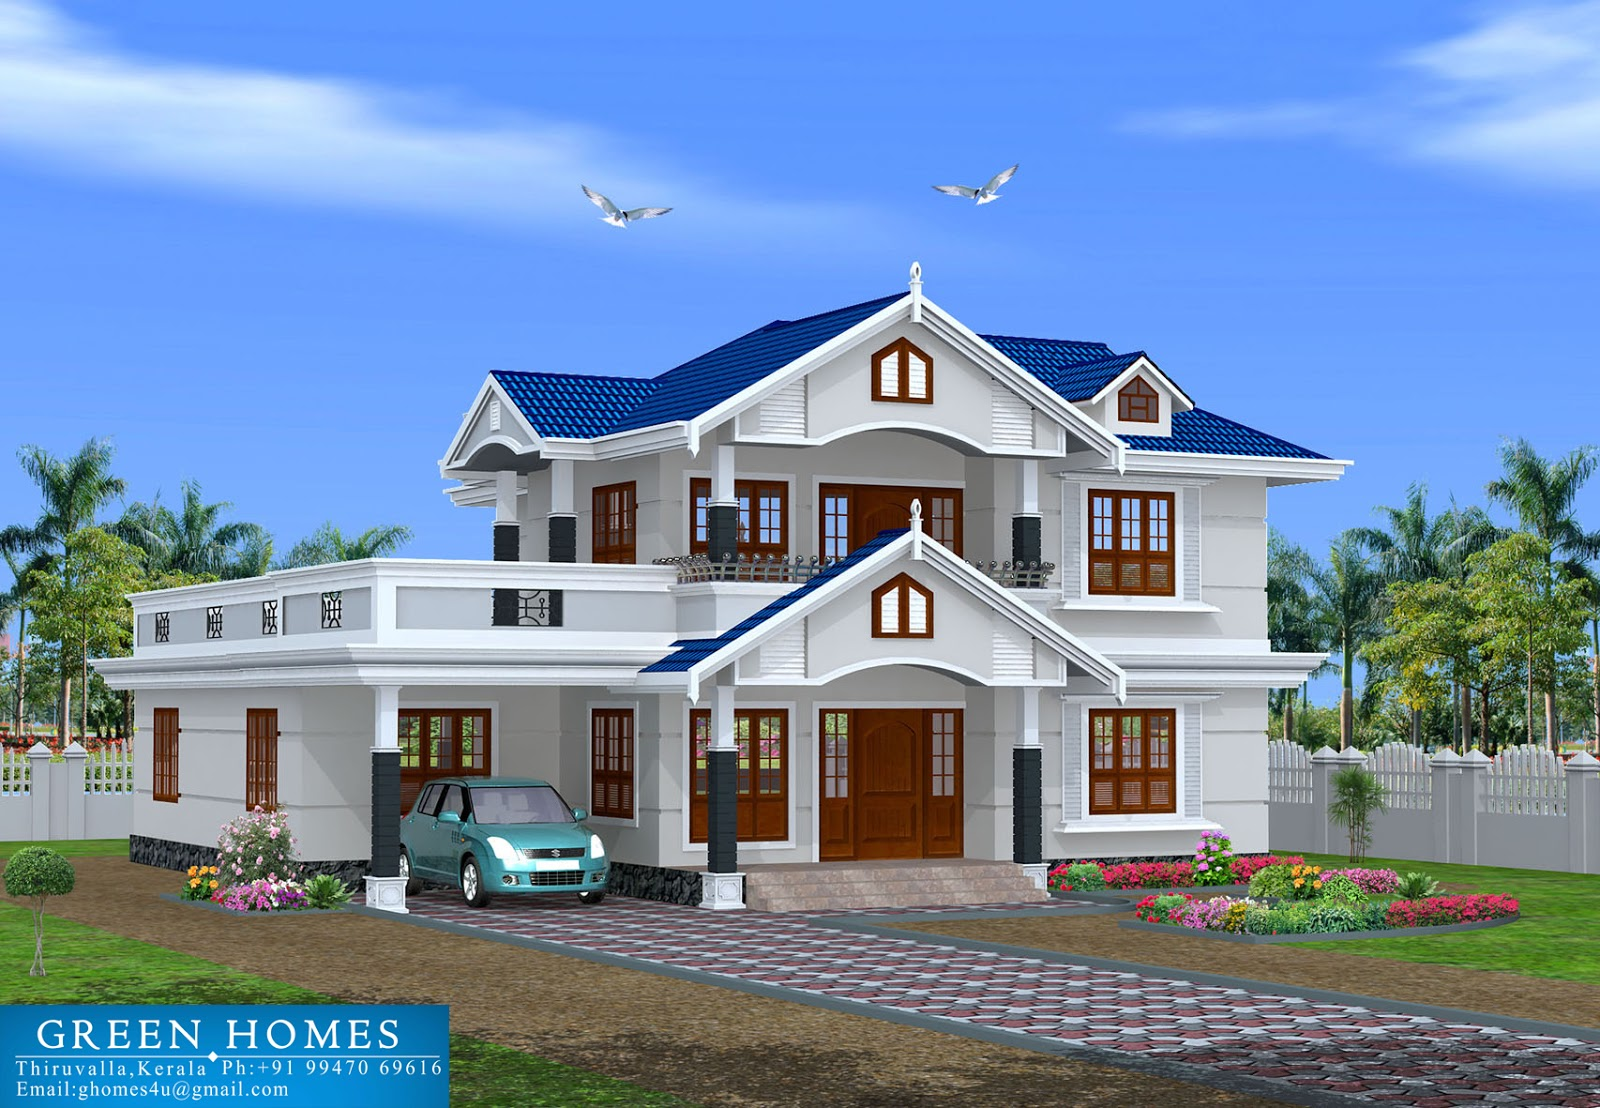 Green homes november 2012 for Home builders house plans